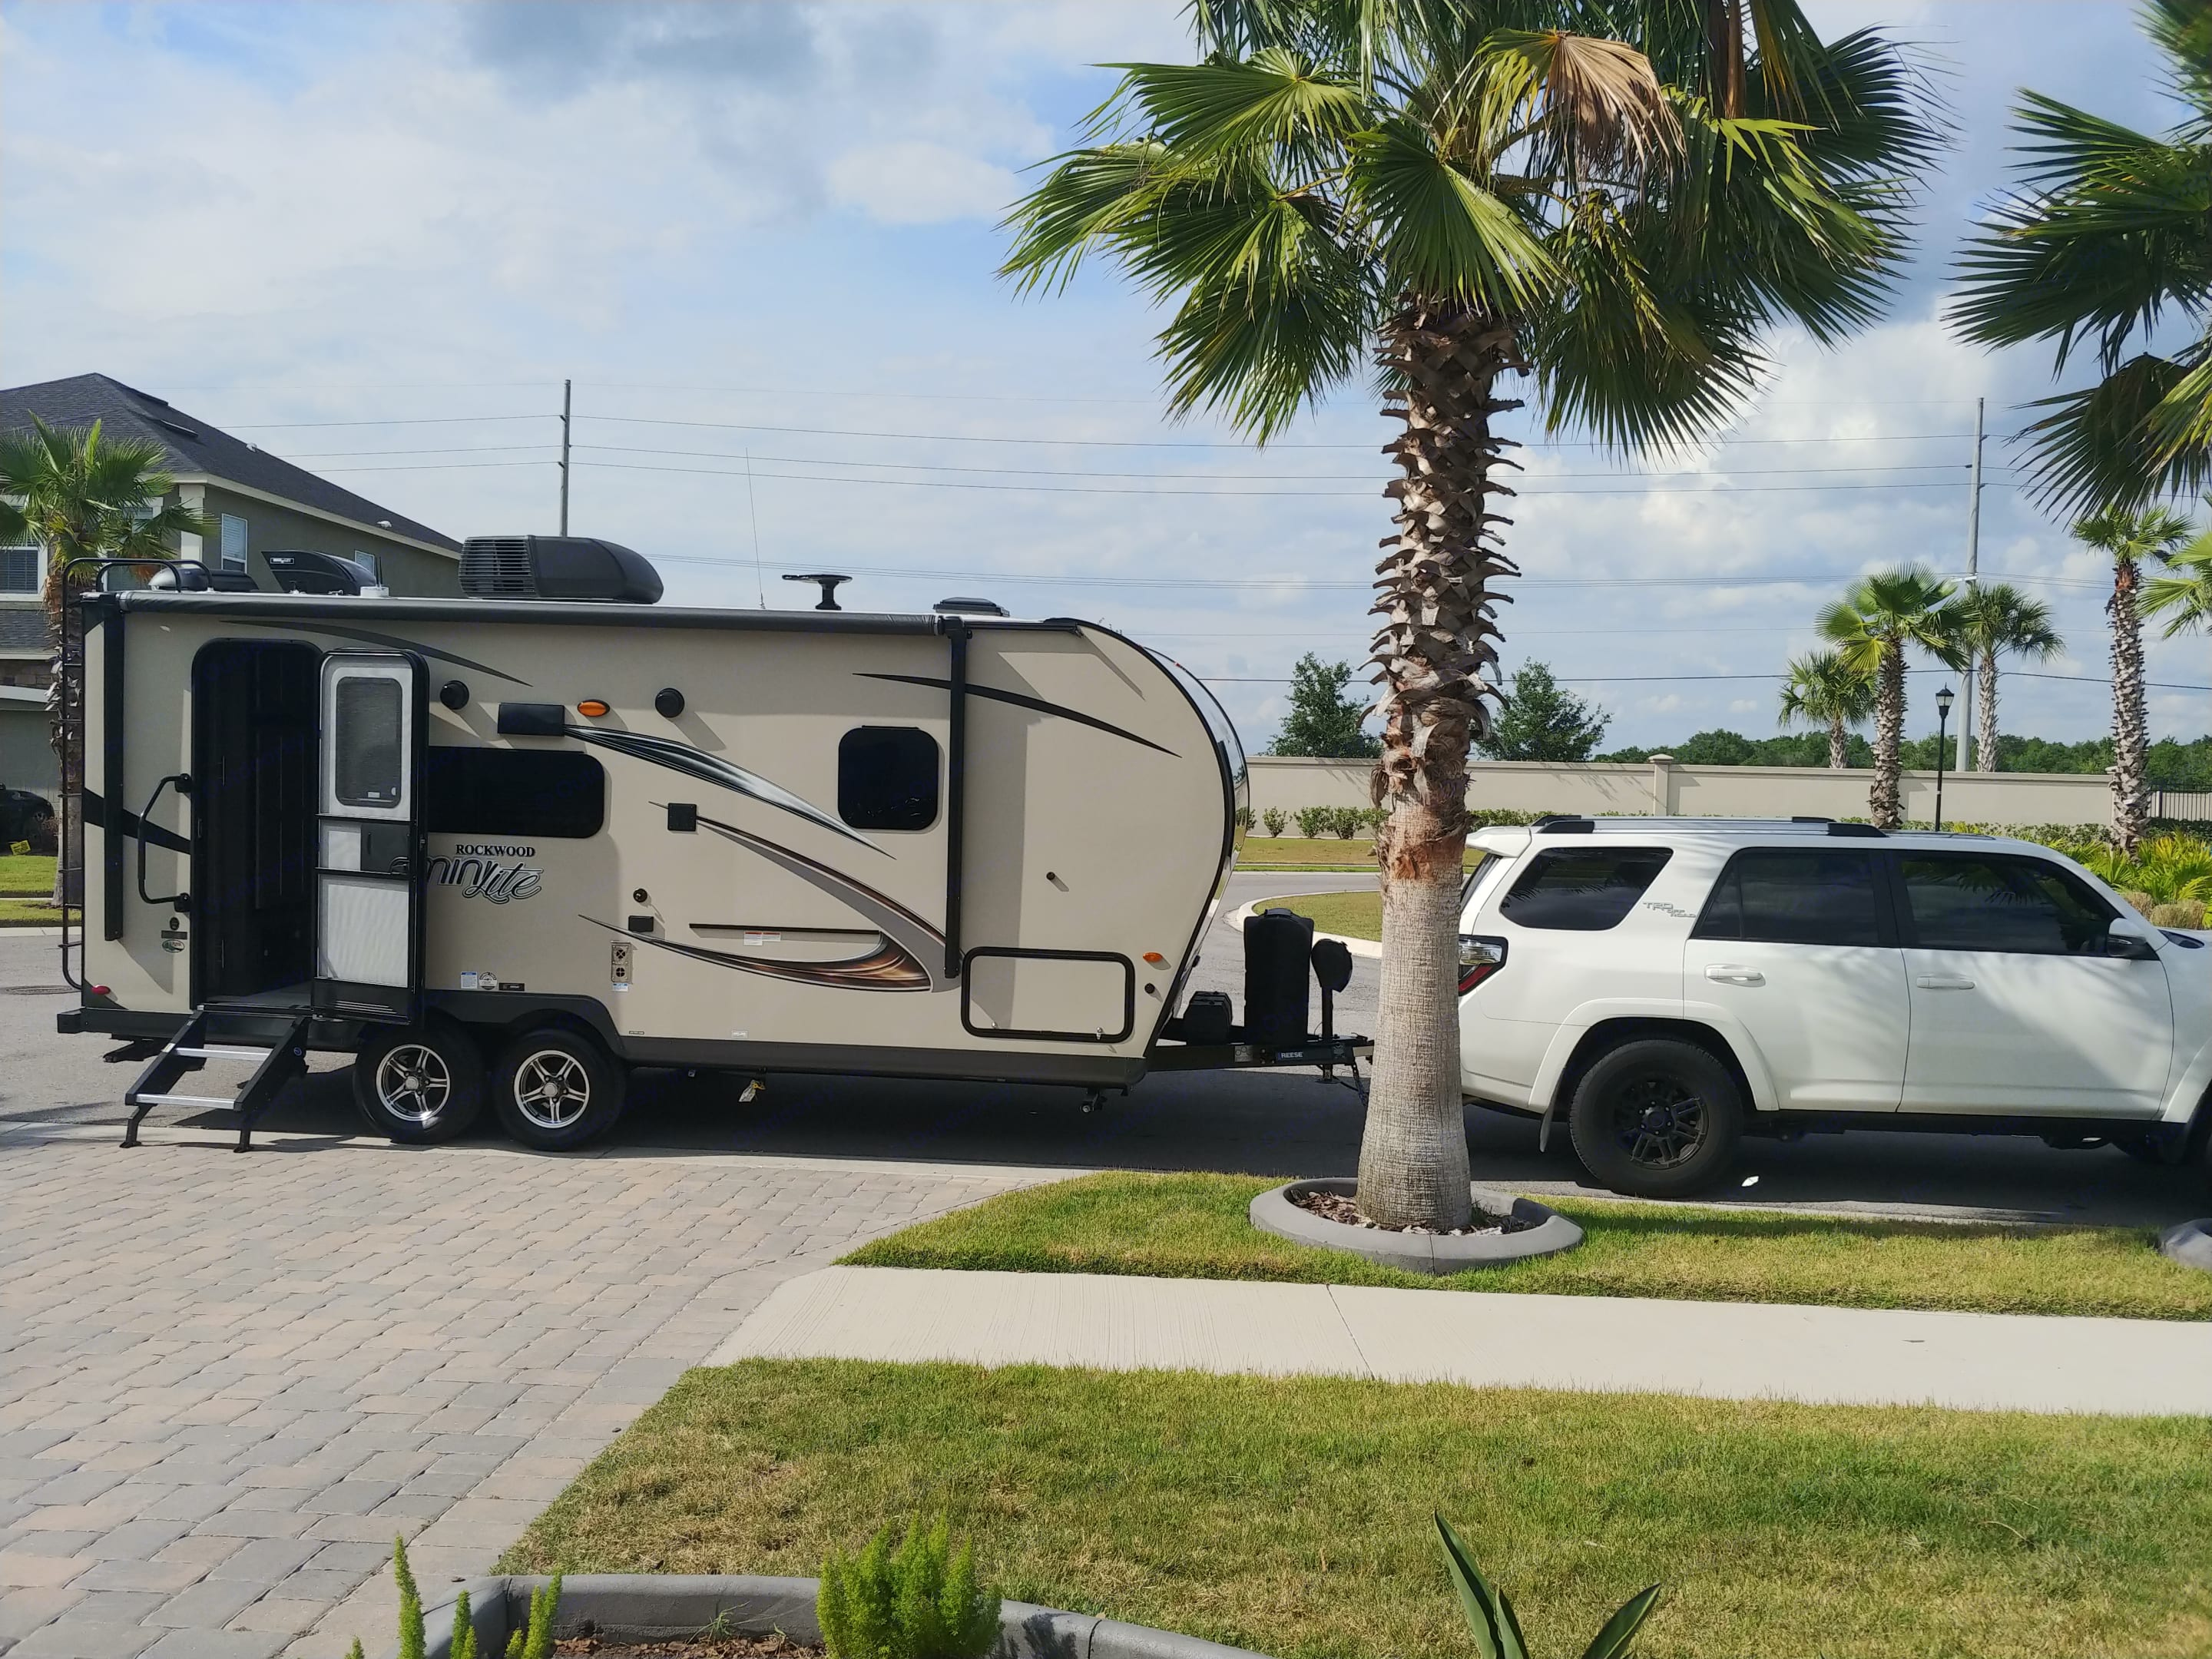 Compact, light and spacious! Electric awning pulls out over this side of the trailer and propane grill attached to side rail.. Forest River Rockwood Mini Lite 2019